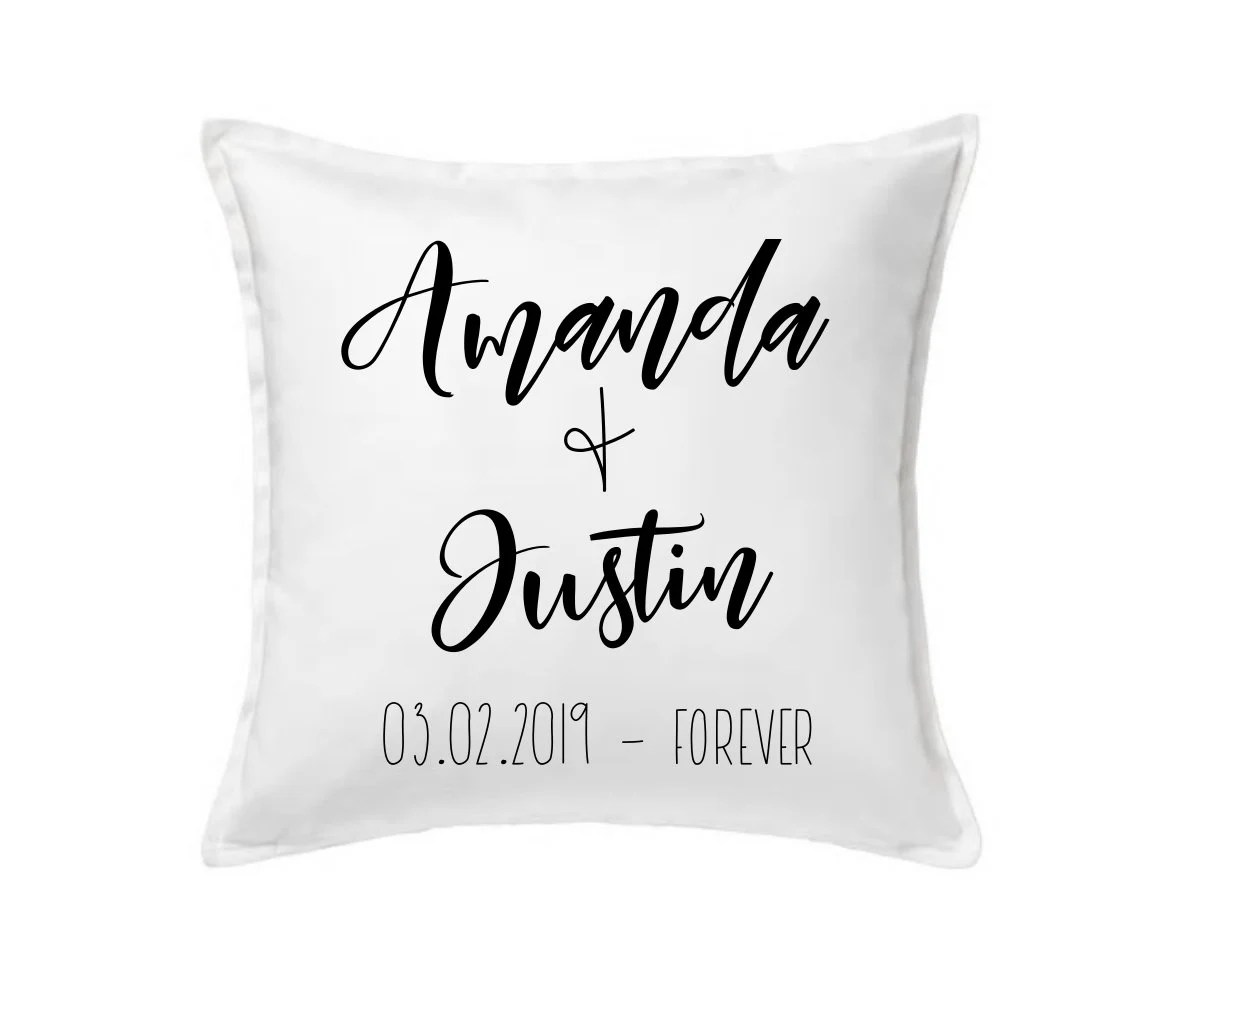 custom family name pillow personalized Pillow Case Christmas image 2